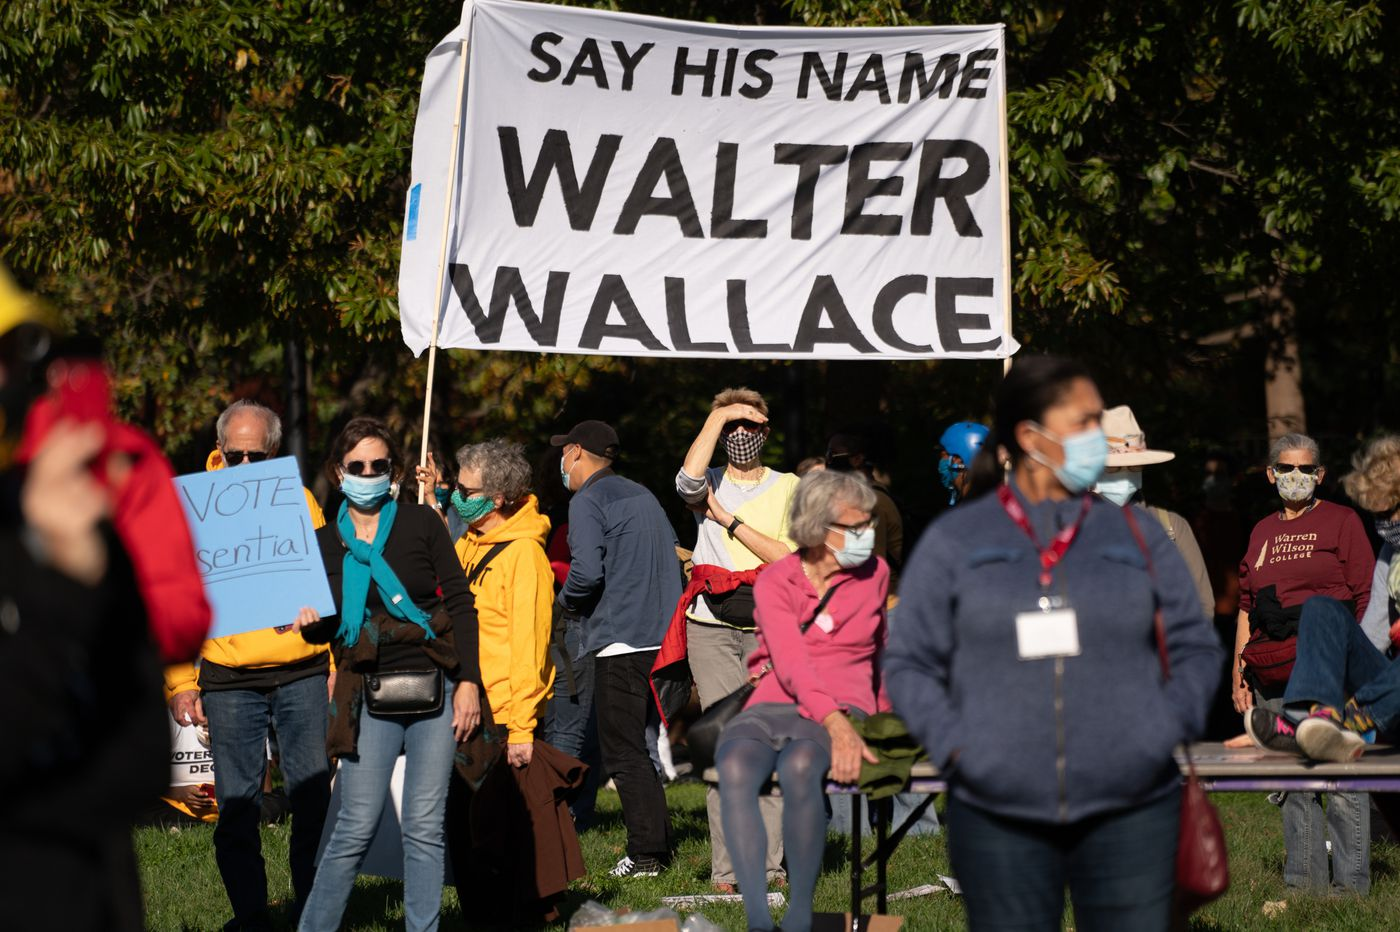 Police video of Walter Wallace Jr. killing raises more questions than answers for Philly | Editorial